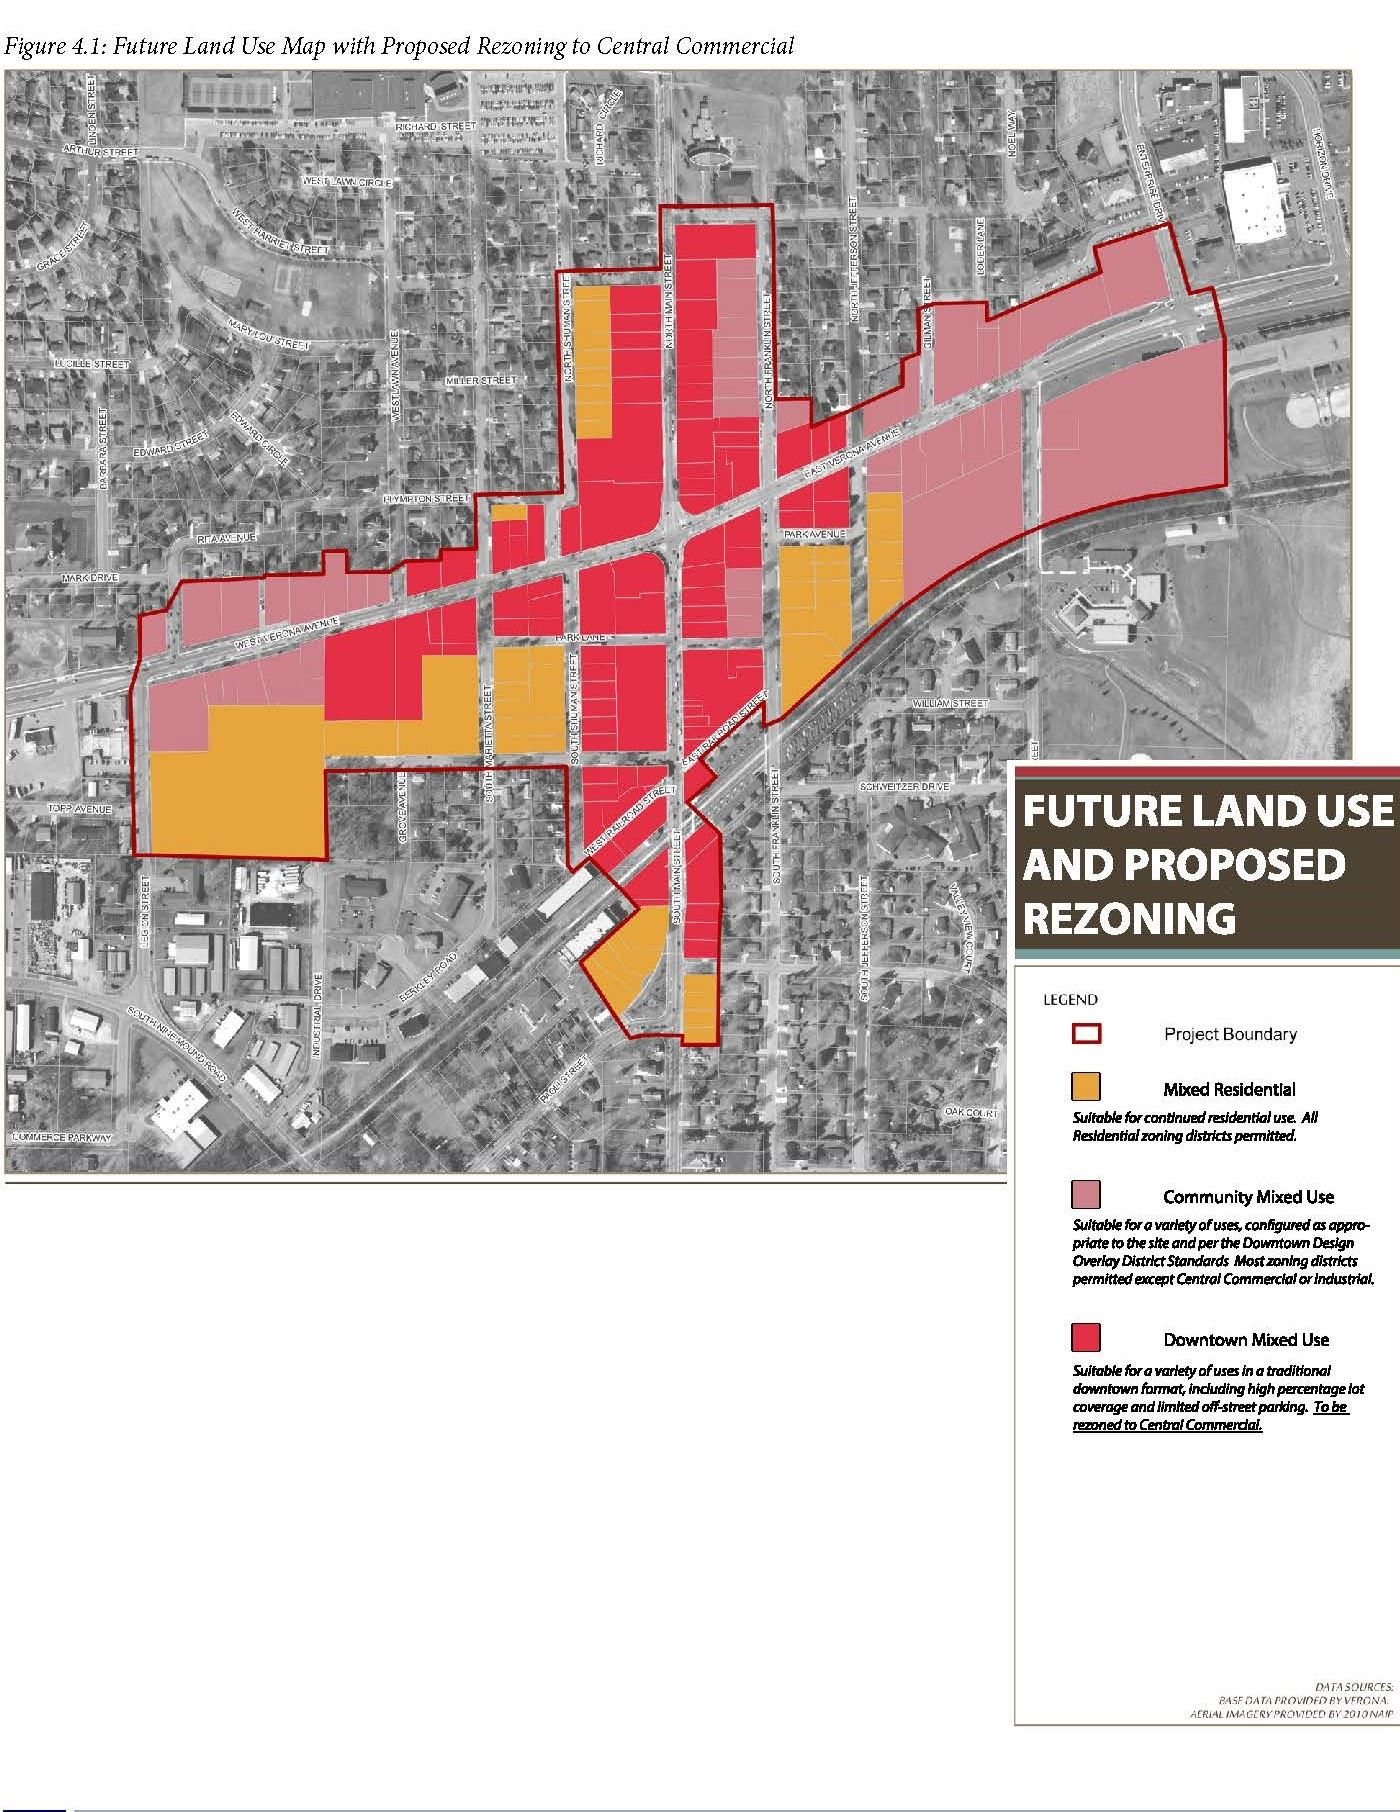 Future land use and proposed rezoning map